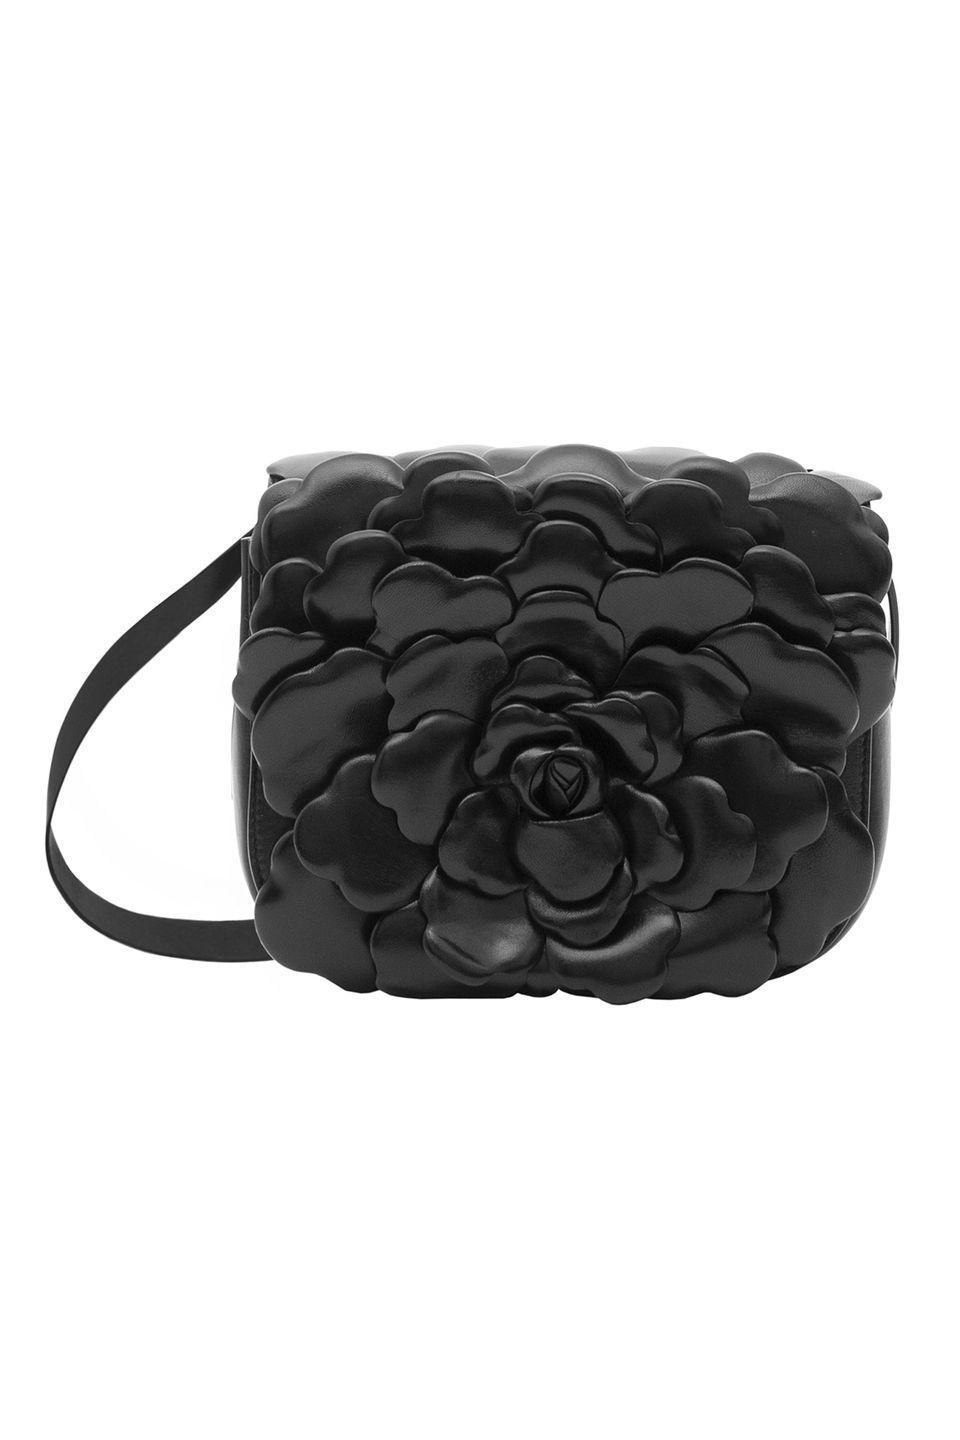 "<p>In search for a non-boring black bag? Look no further than Valentino's freshest bloom, the Petal bag. The style is only available in select retailers right now, so keep an eye on it before it sells out. </p><p><em>Valentino Garavani Atelier Petal, $2,995; valentino.com</em></p><p><a class=""link rapid-noclick-resp"" href=""https://www.valentino.com/en-us"" rel=""nofollow noopener"" target=""_blank"" data-ylk=""slk:SHOP NOW"">SHOP NOW</a></p>"